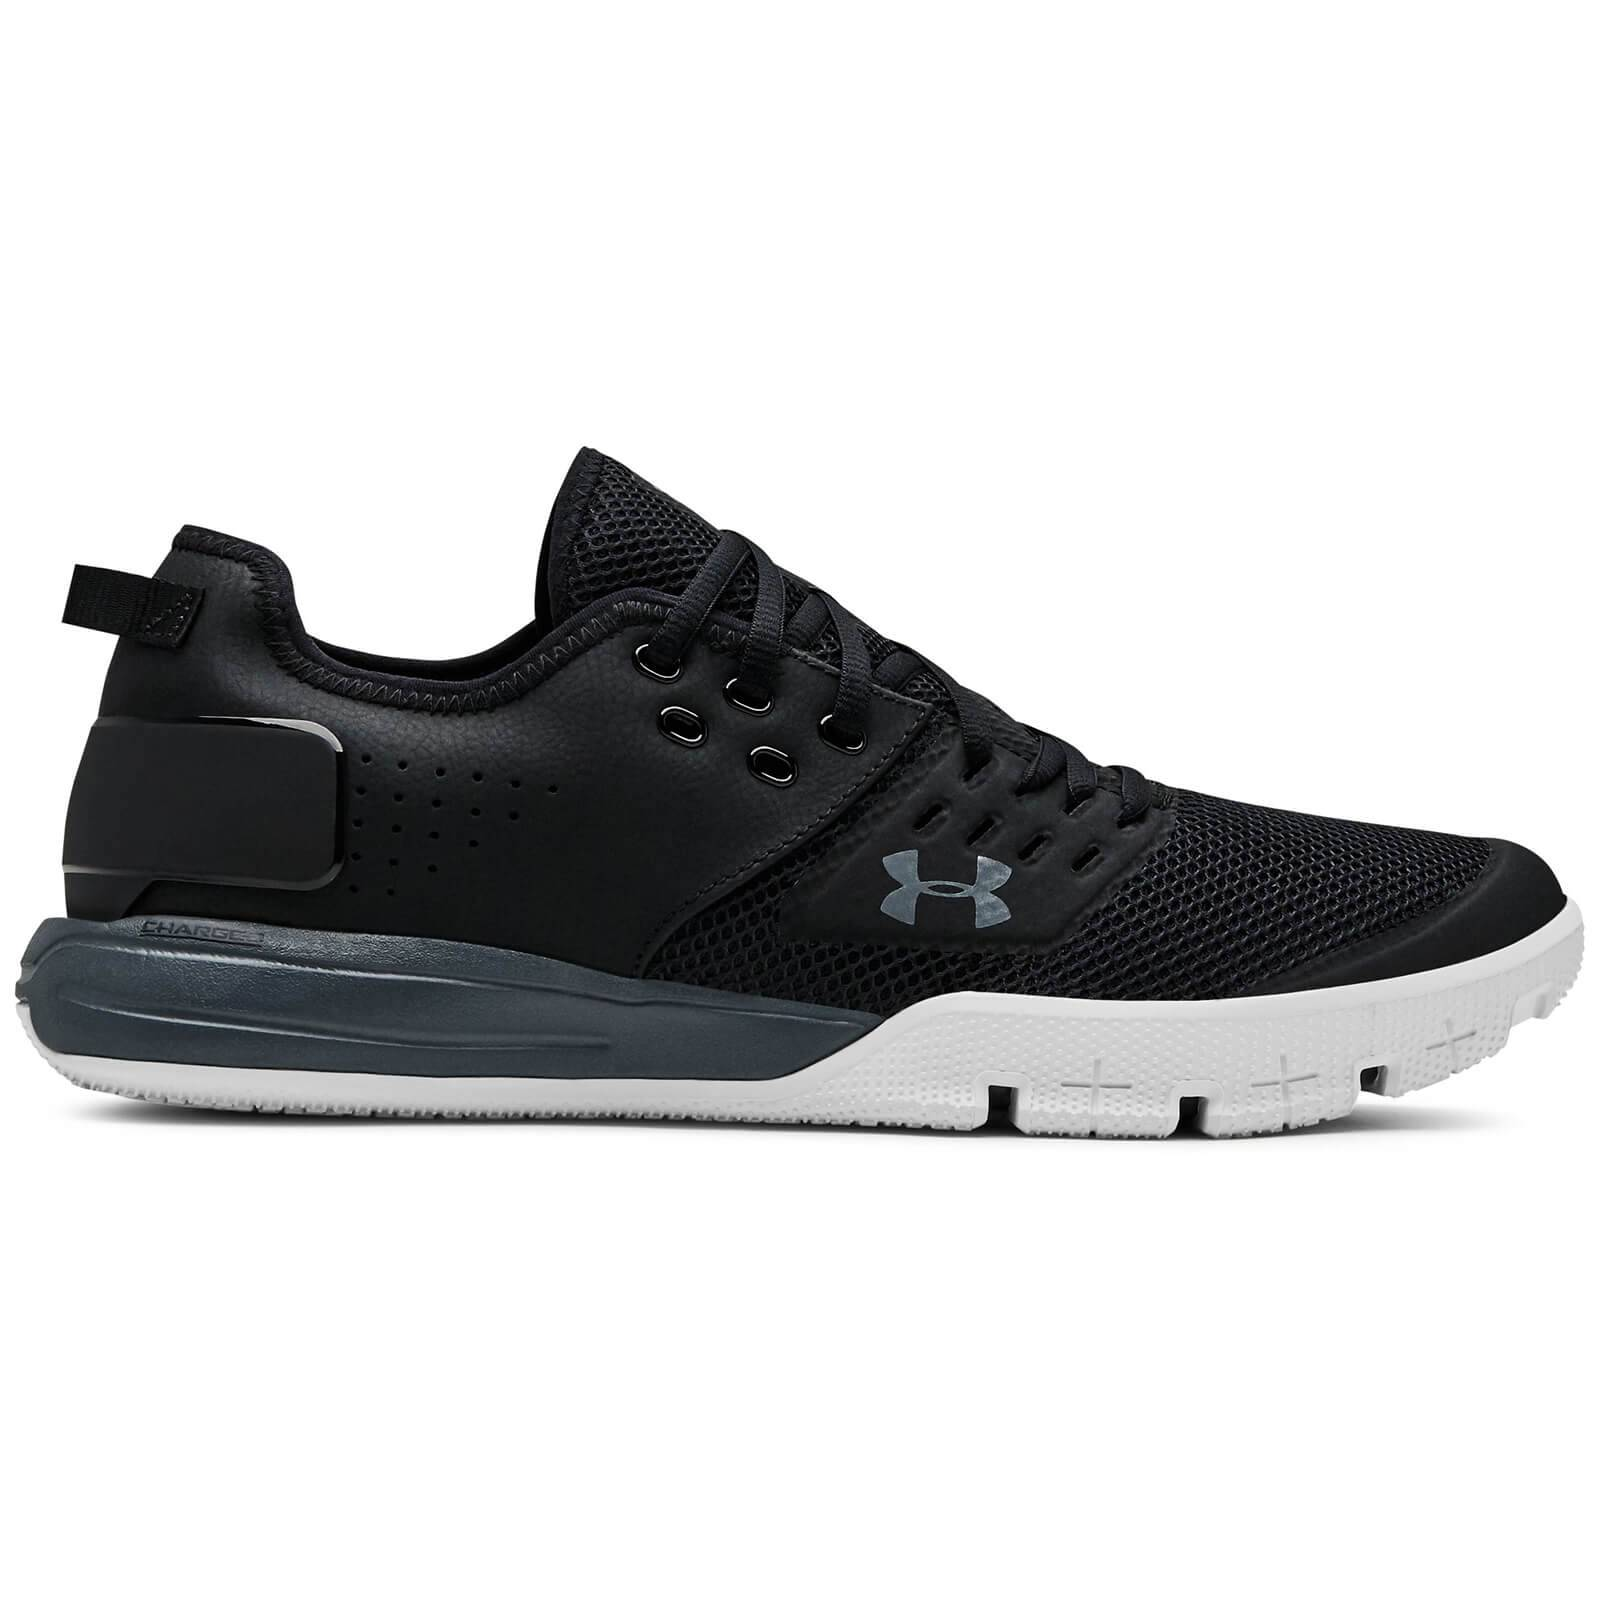 Under Armour Charged Ultimate 3.0 Training Shoes - US 8.5/UK 7.5 - Black